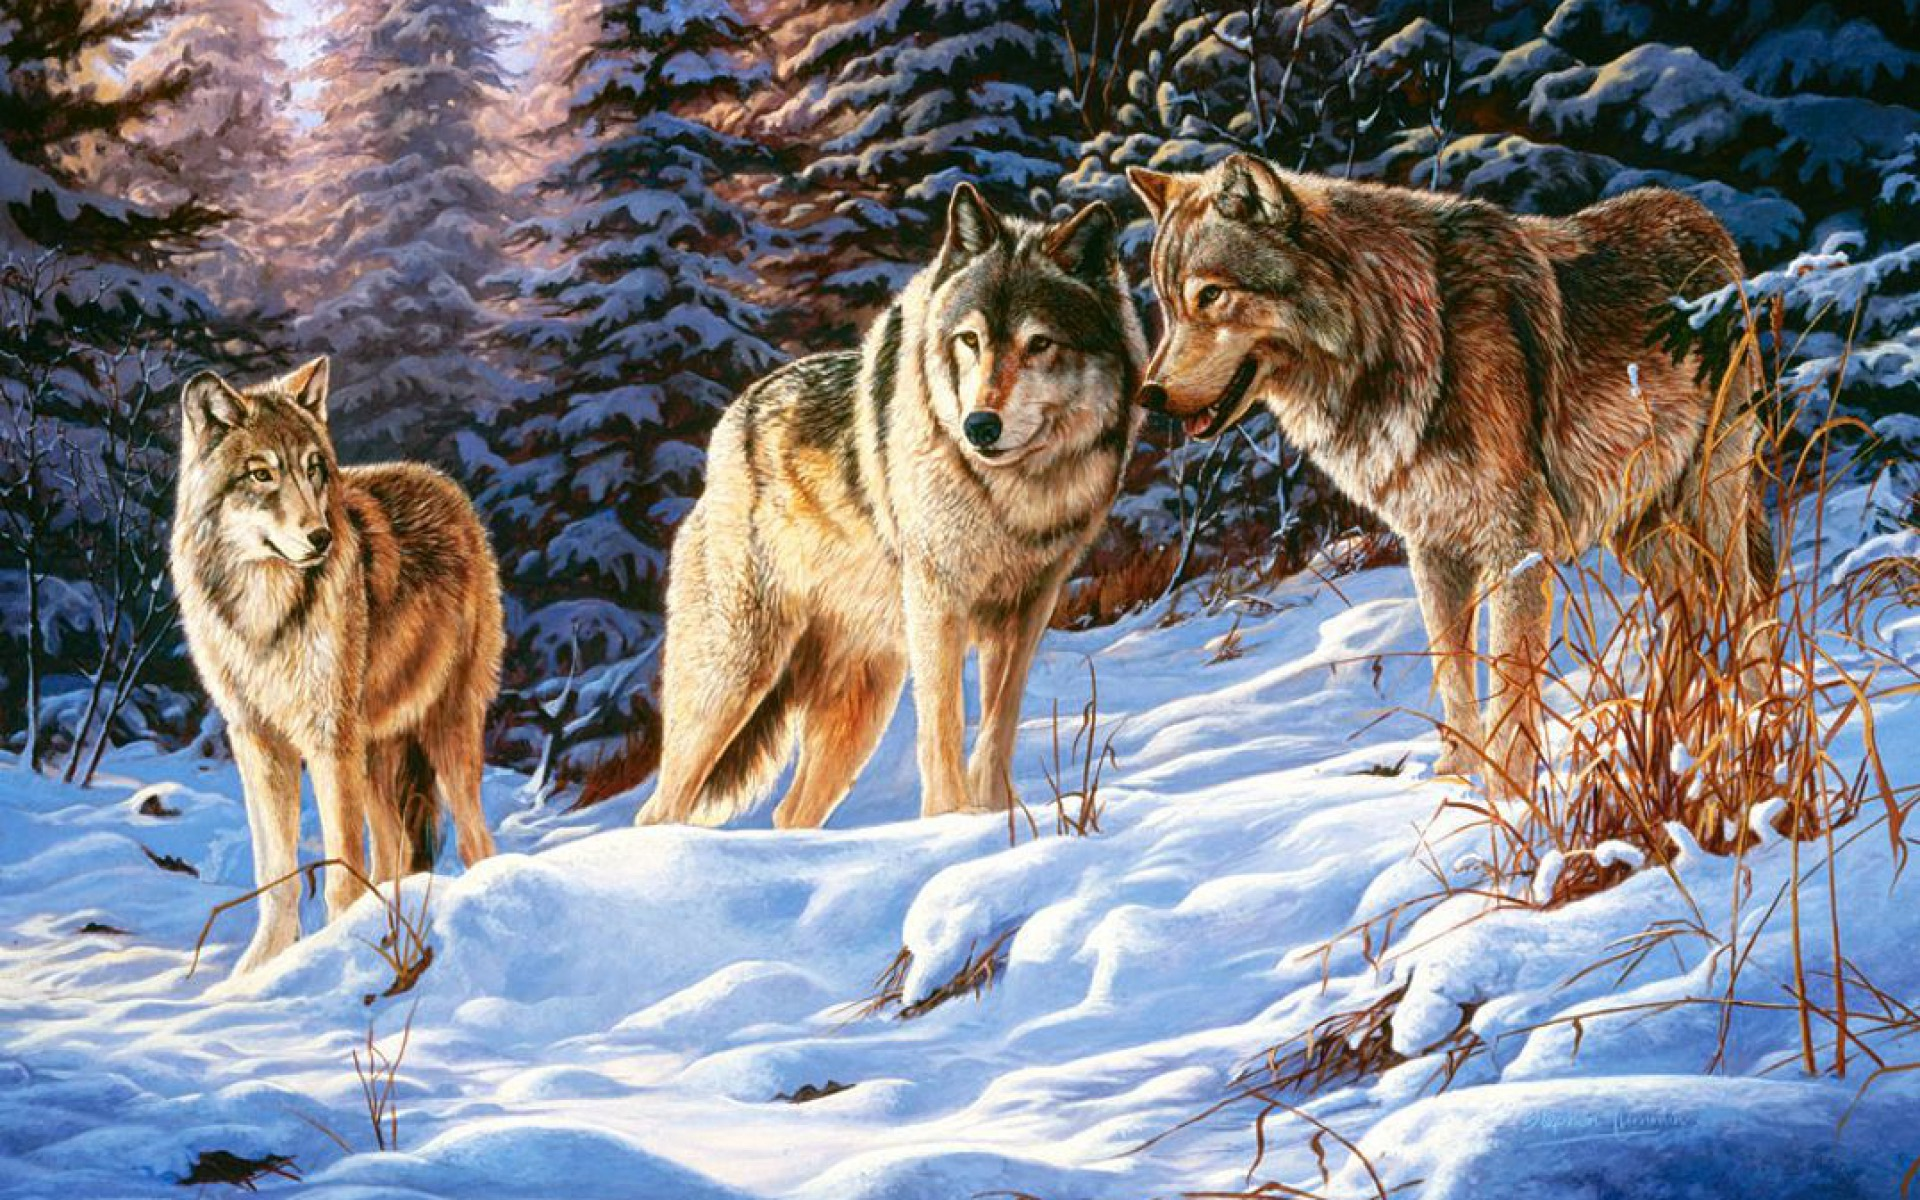 Animated Fish Wallpaper Mobile Winter Wood Wolves Small Talk Wallpapers Winter Wood